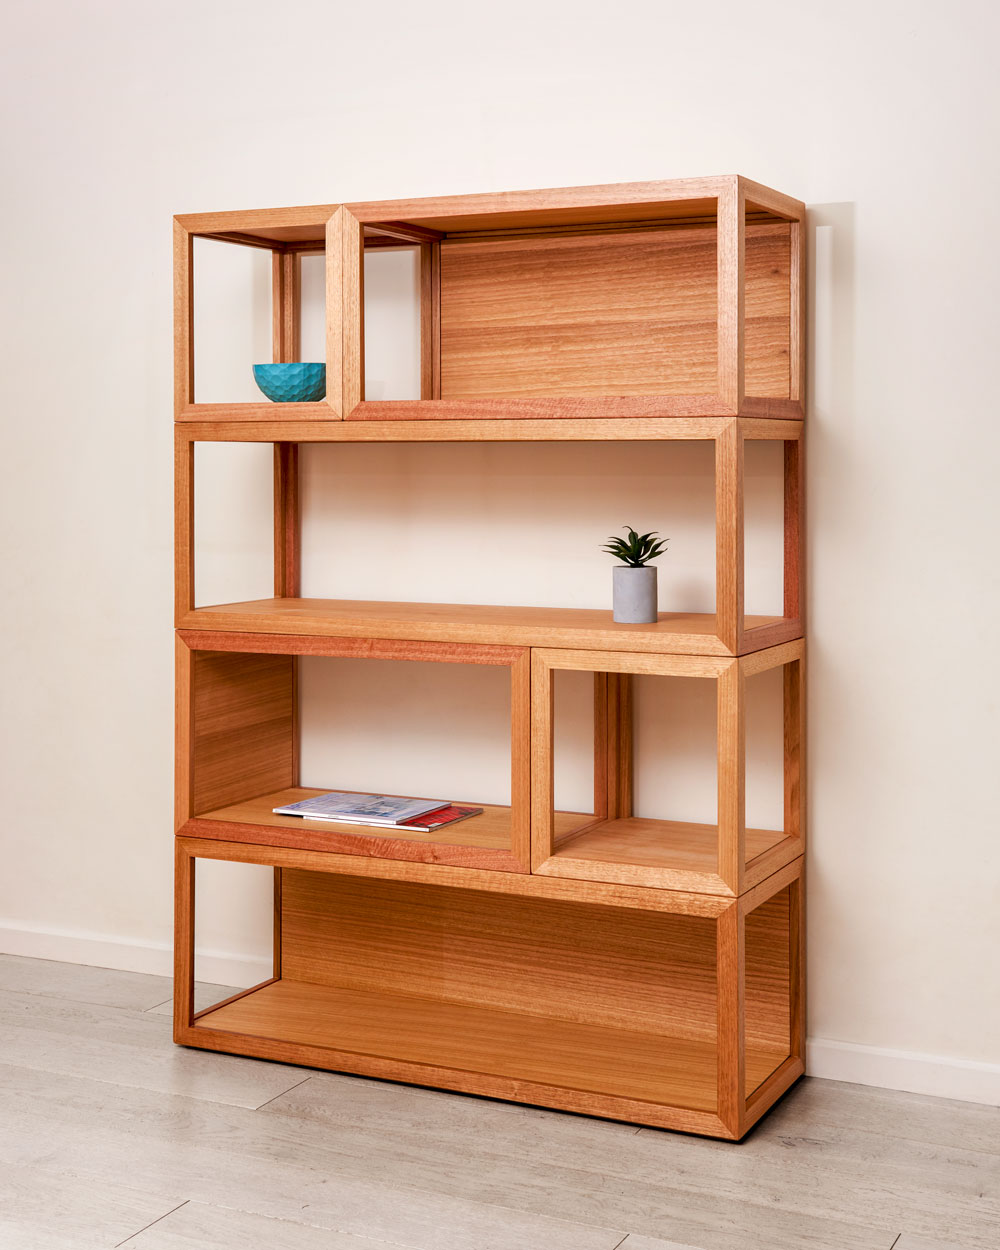 Cubis Shelf System - Custom designed furniture - Geelong, Melbourne, Victoria - sustainable timber